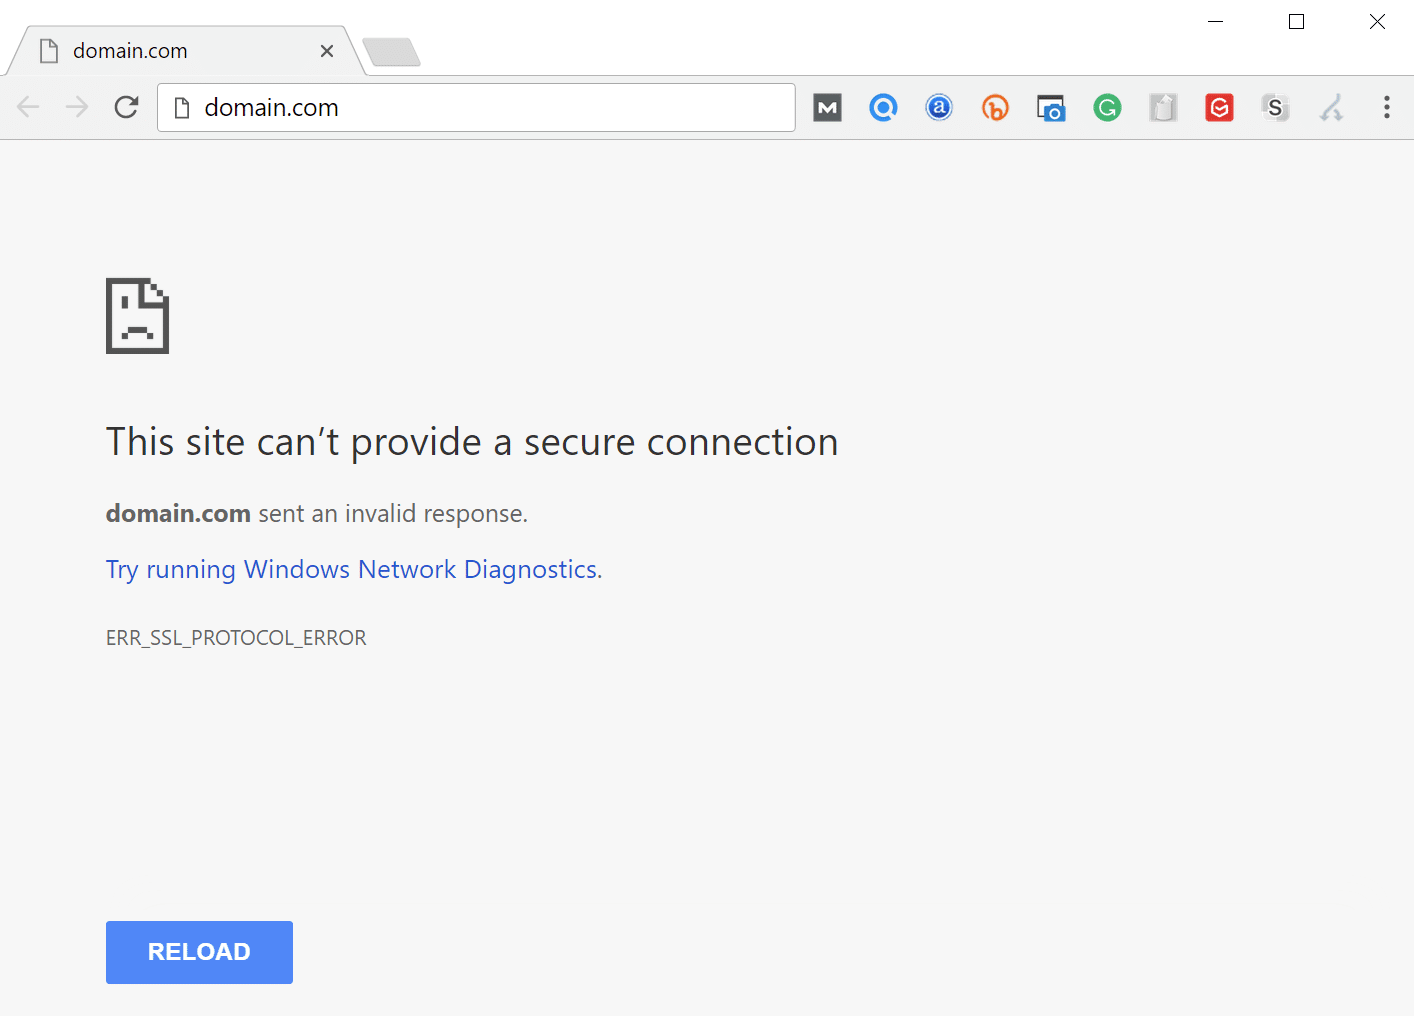 ERR_SSL_PROTOCOL_ERROR i Chrome